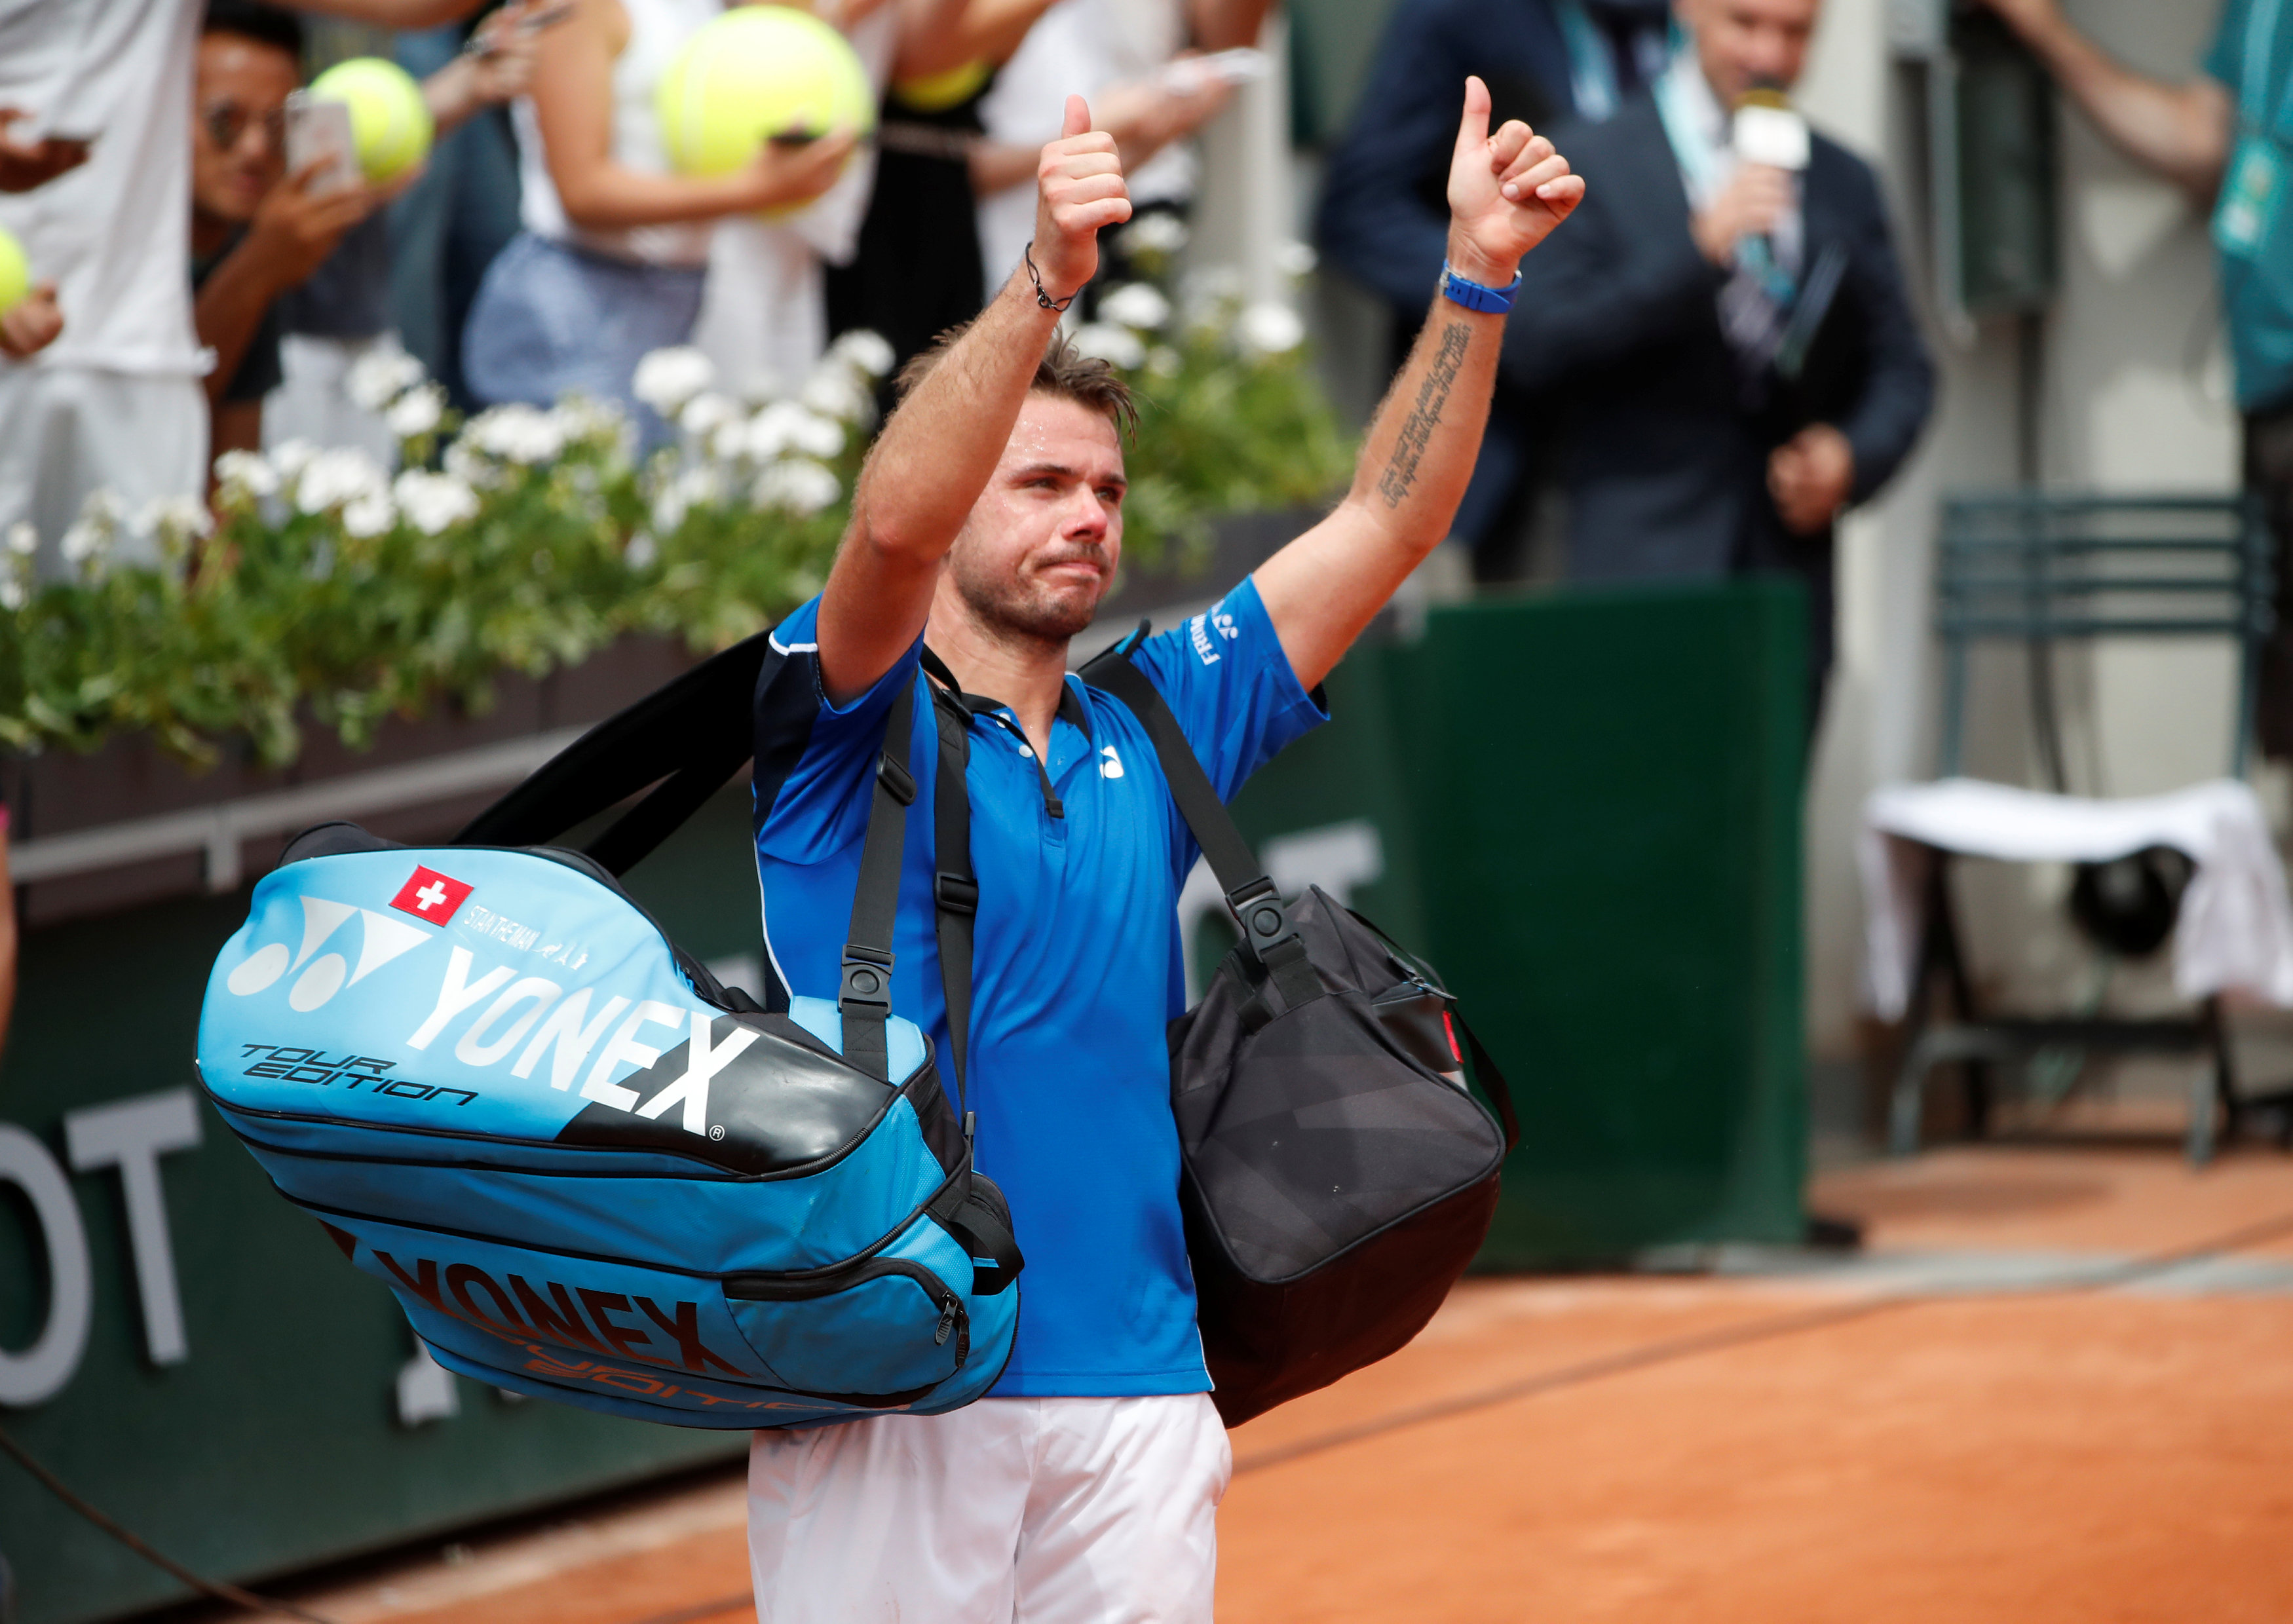 French Open: Wawrinka determined to reclaim place among elite